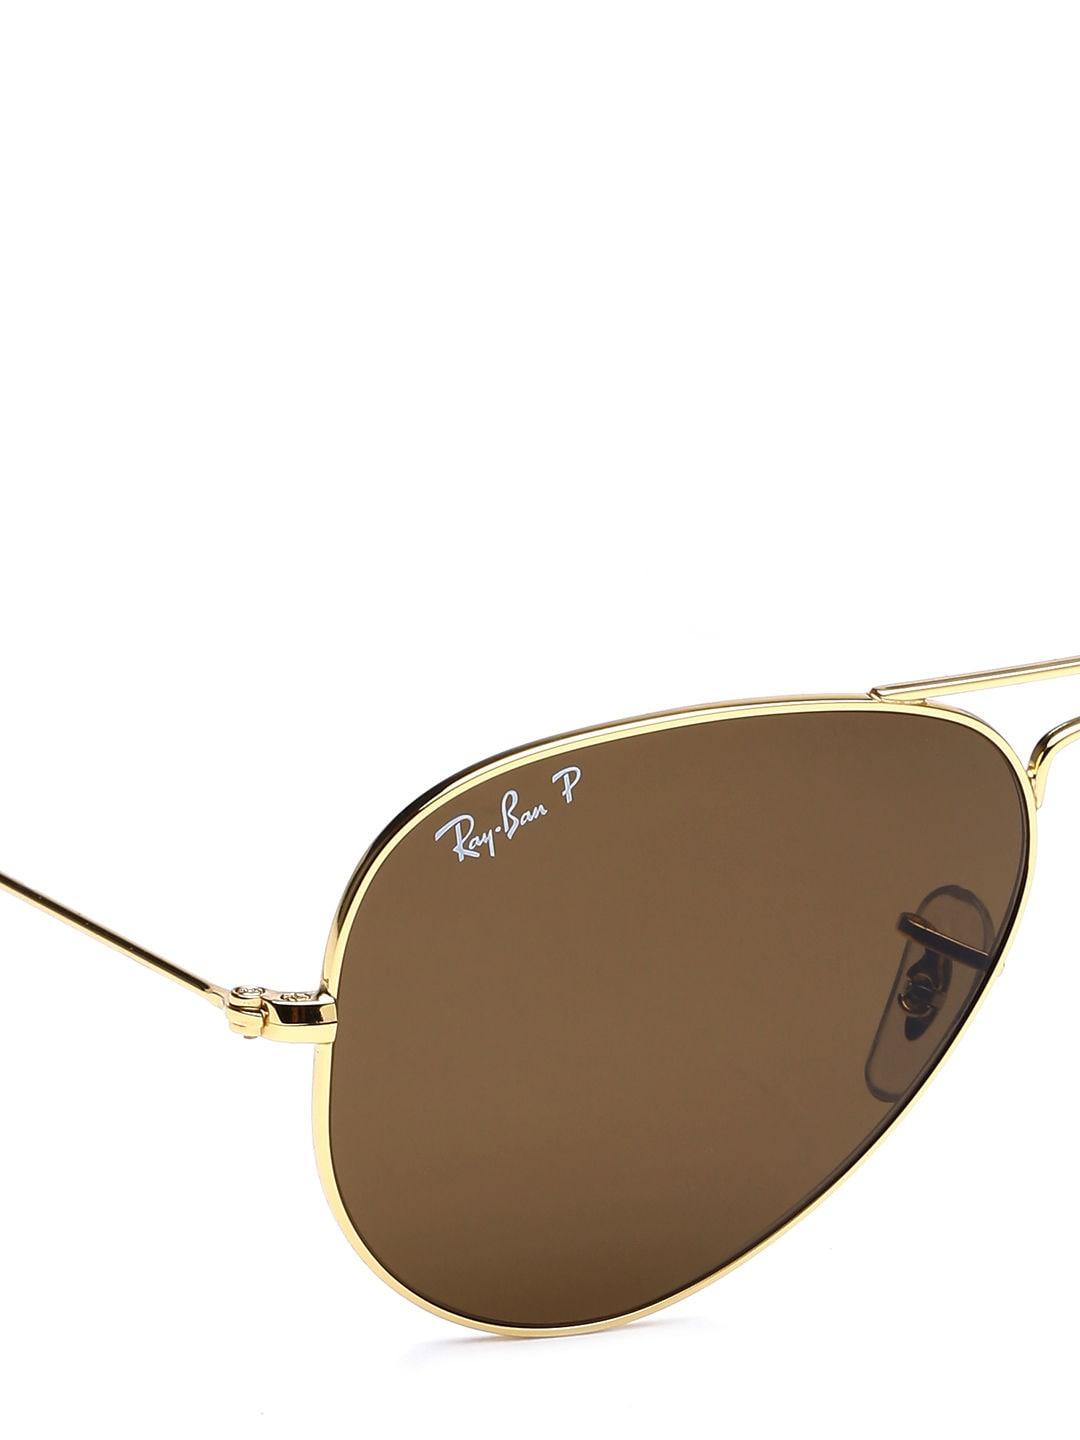 Ray ban sunglasses with price - Ray Ban Sunglasses With Price 11